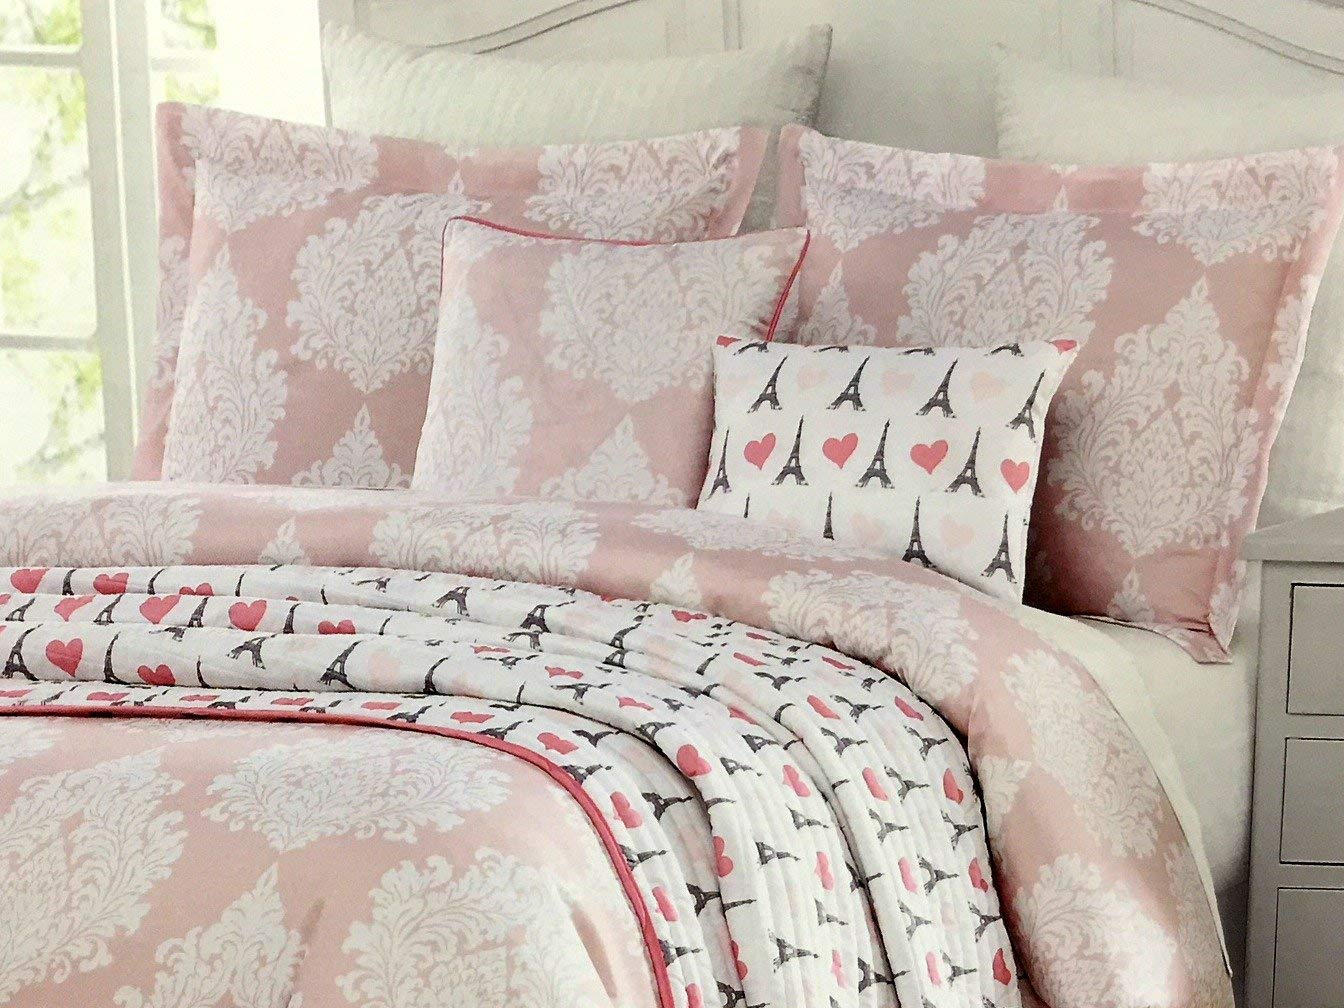 Envogue Kids 5 pc Paris/Eiffel Tower Twin Comforter Set for Girls with Coverlet Blanket 2 Throw Pillows and Sham - Eiffel Tower Hearts White Damask Medallions on Pink